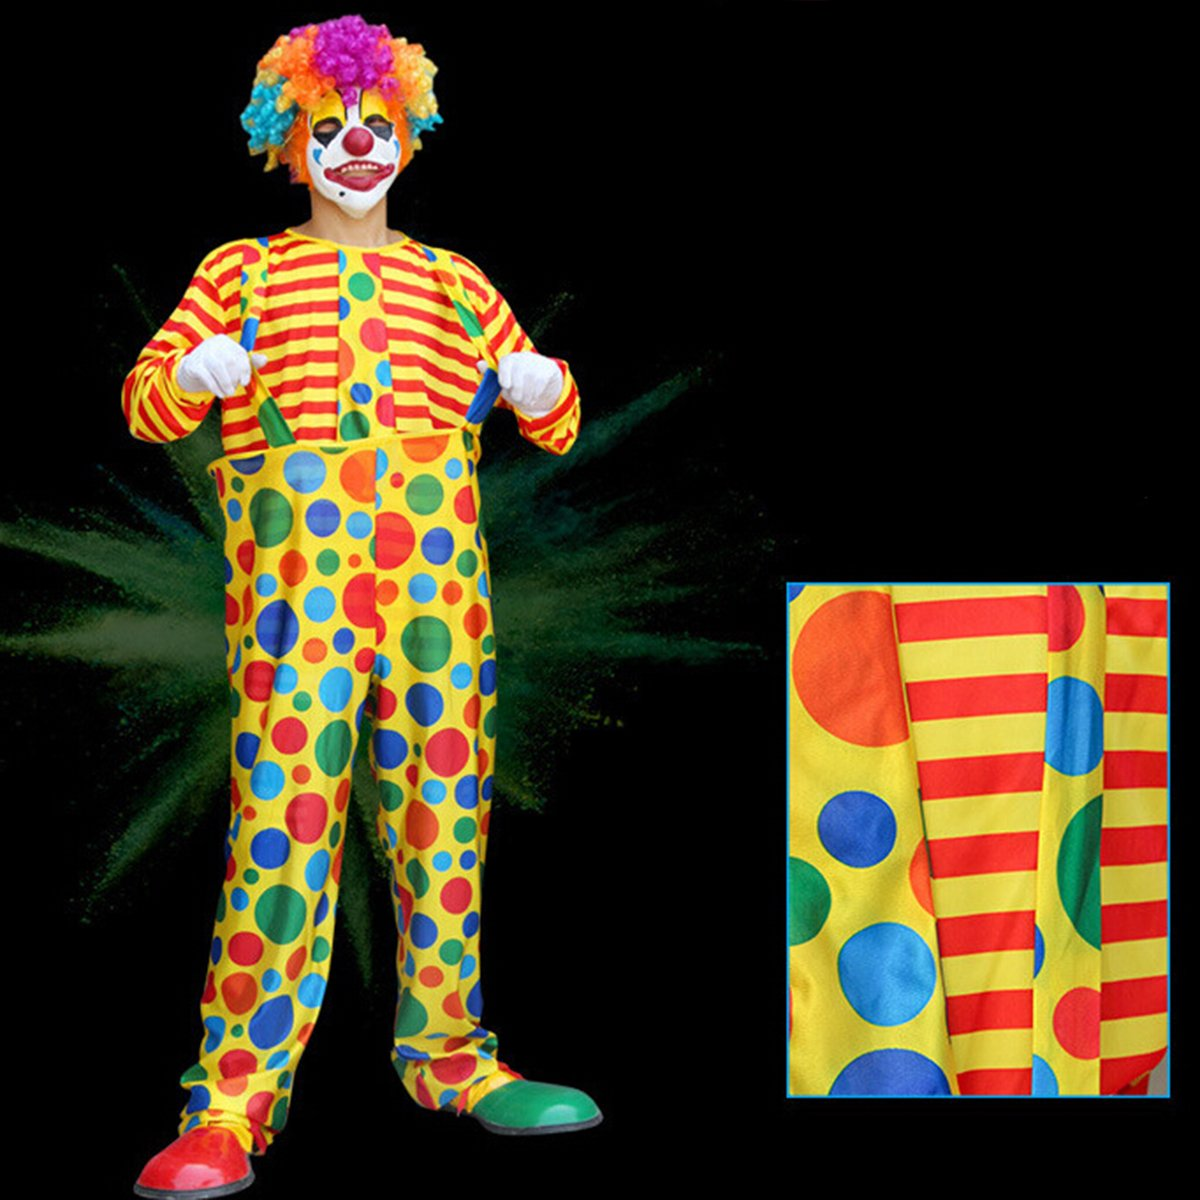 Amazon.com: LUOEM Carnival Clown Costume Halloween Masquerade Adult Clown Outfit Suit For Men Party - Size 5XL: Clothing